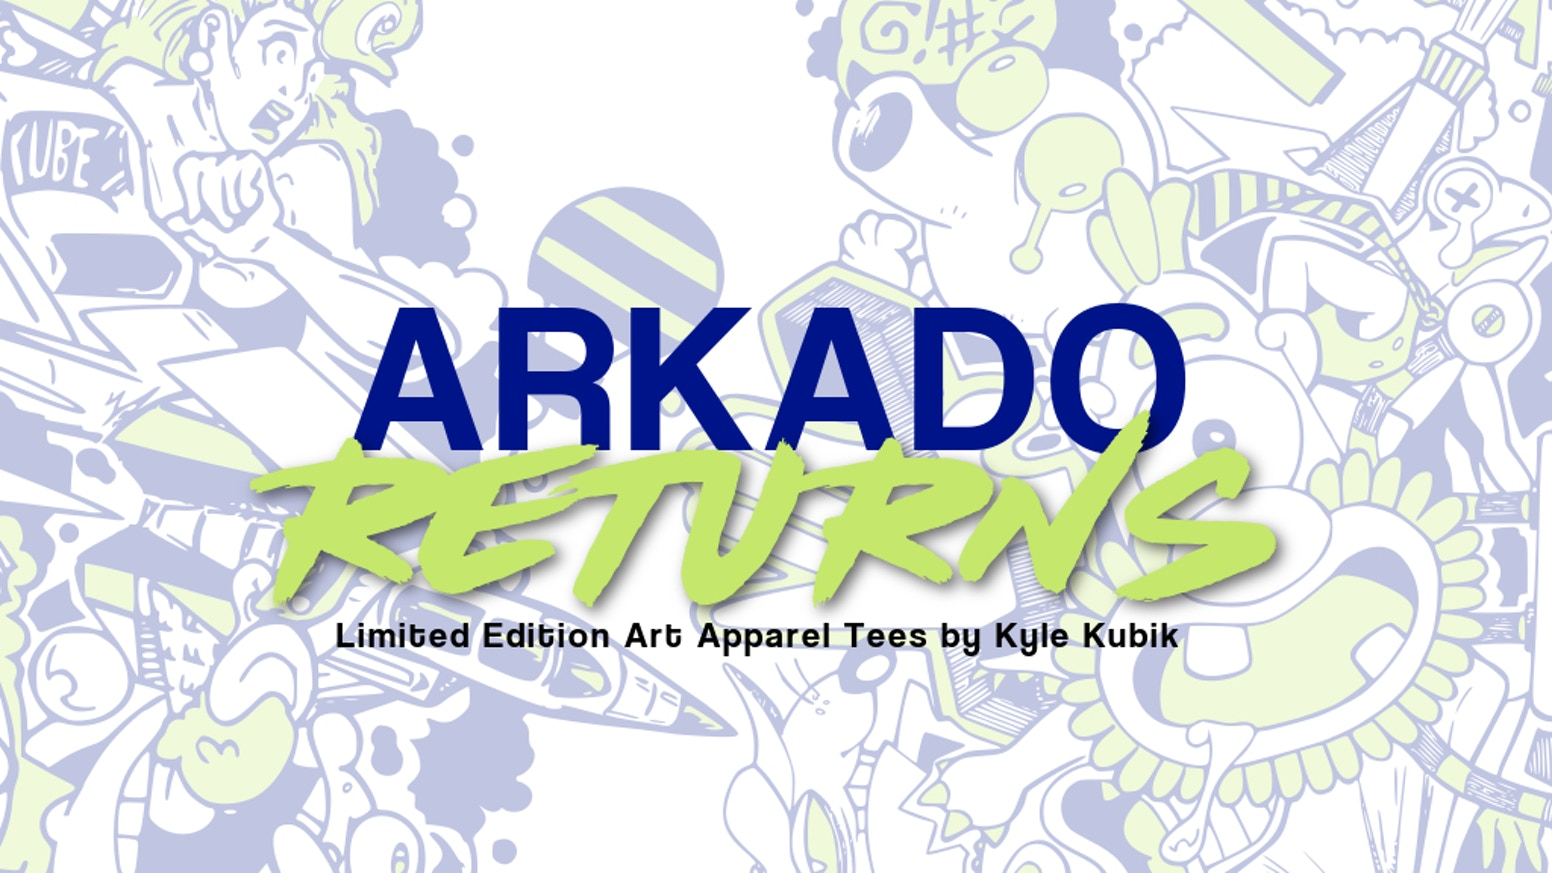 Vintage Arcade Inspired, Limited Edition Artwork Apparel Tees. ARKADO RETURNS is a follow up to the successfully funded ARKADO tee.